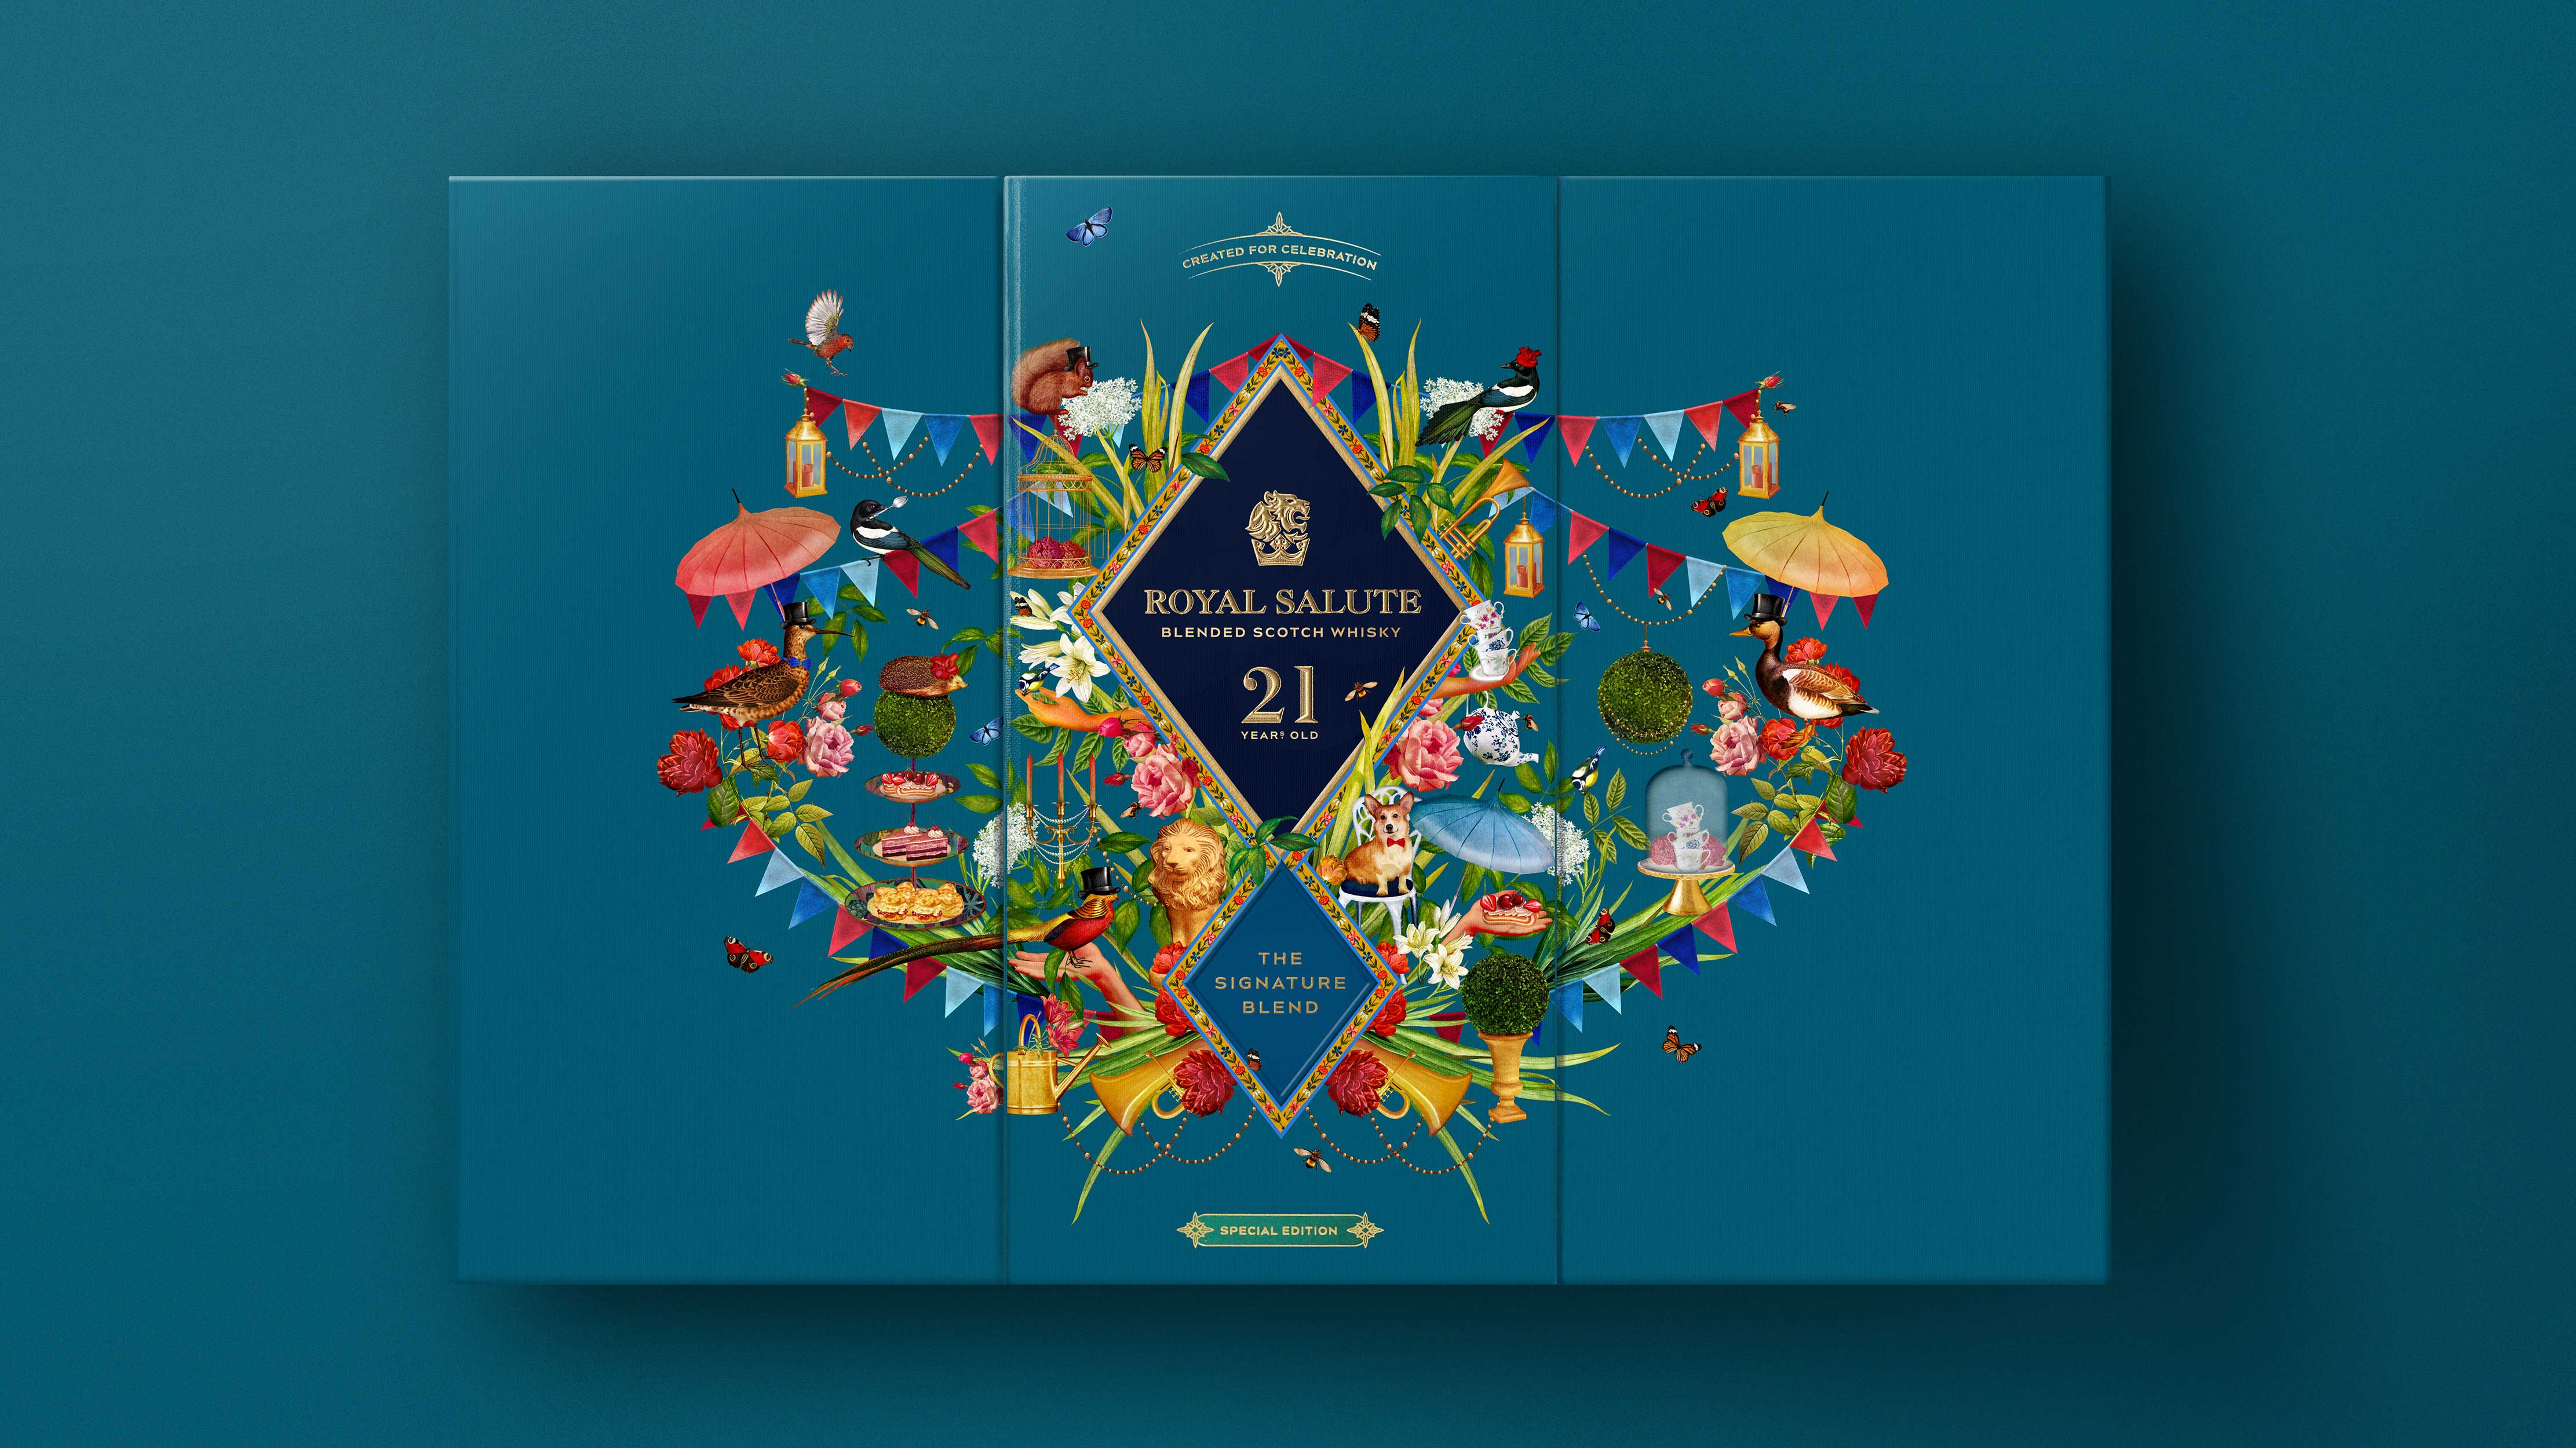 Boundless Brand Design Agency Create Royal Salute, 21 Year Celebration Edition